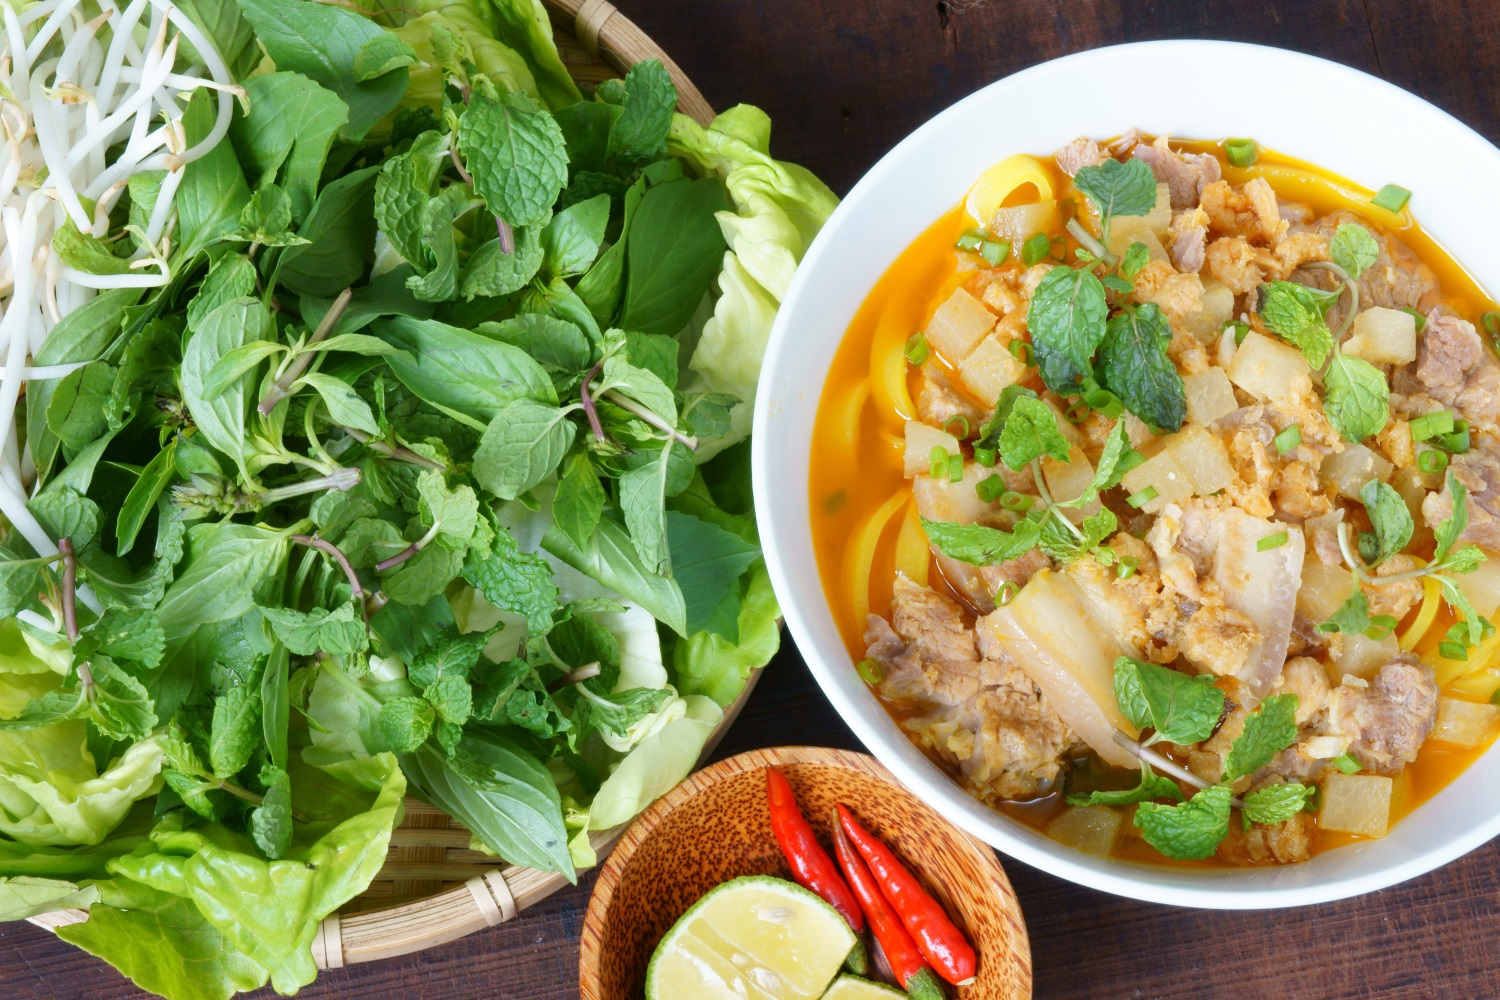 Bowl of mi quang with salad and other ingredients